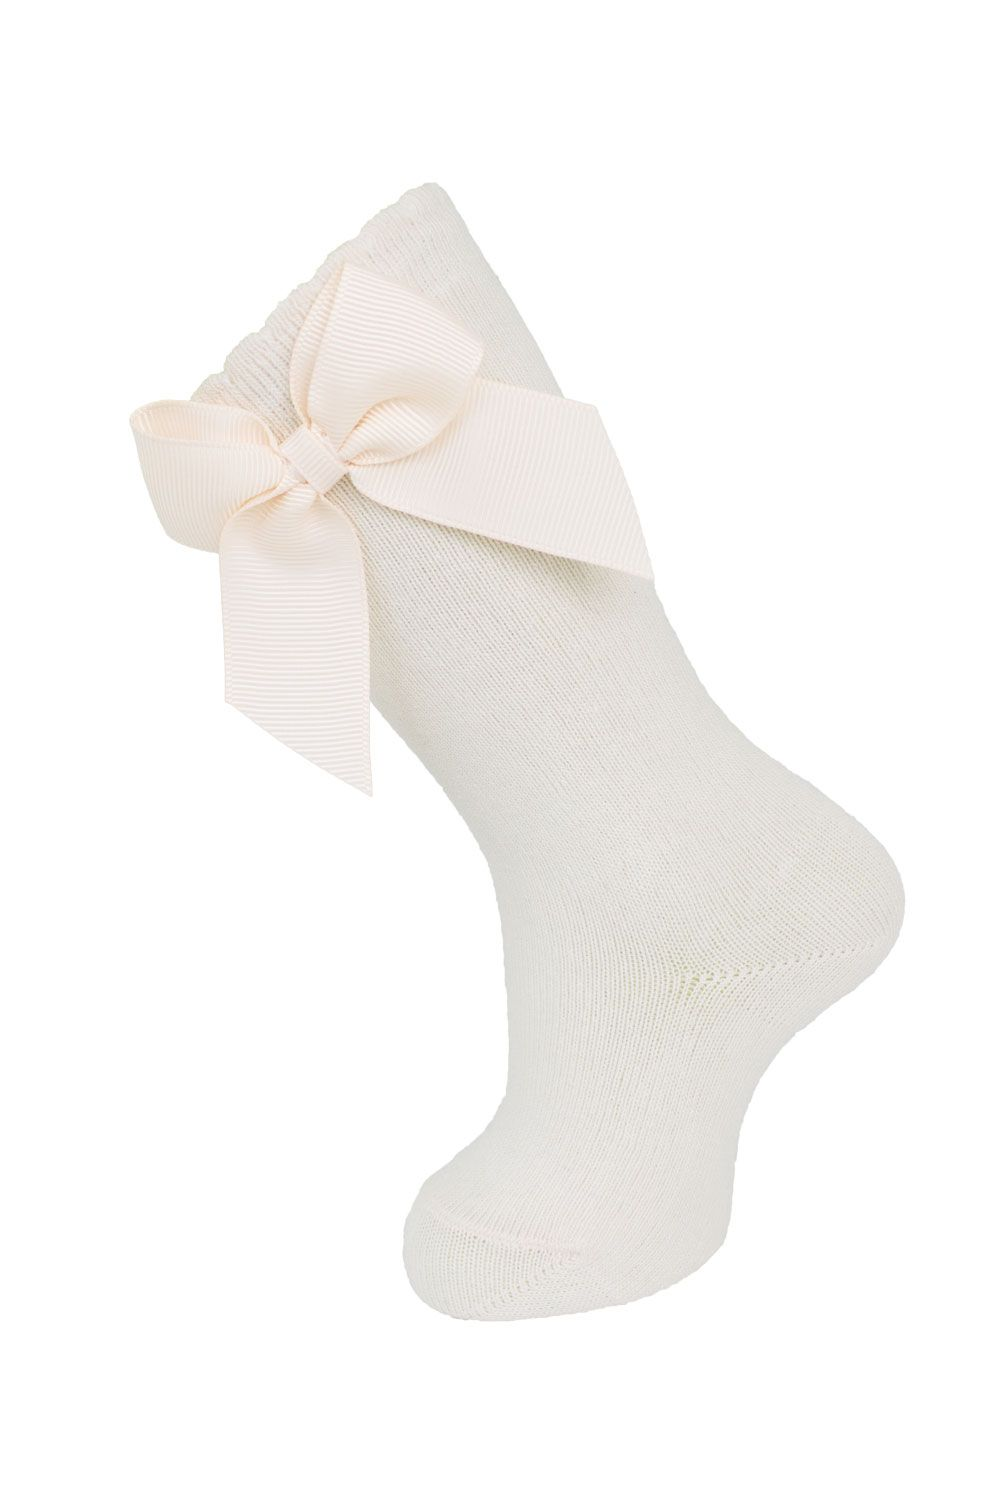 Carlomagno Ivory Knee High w/Grosgrain Bow